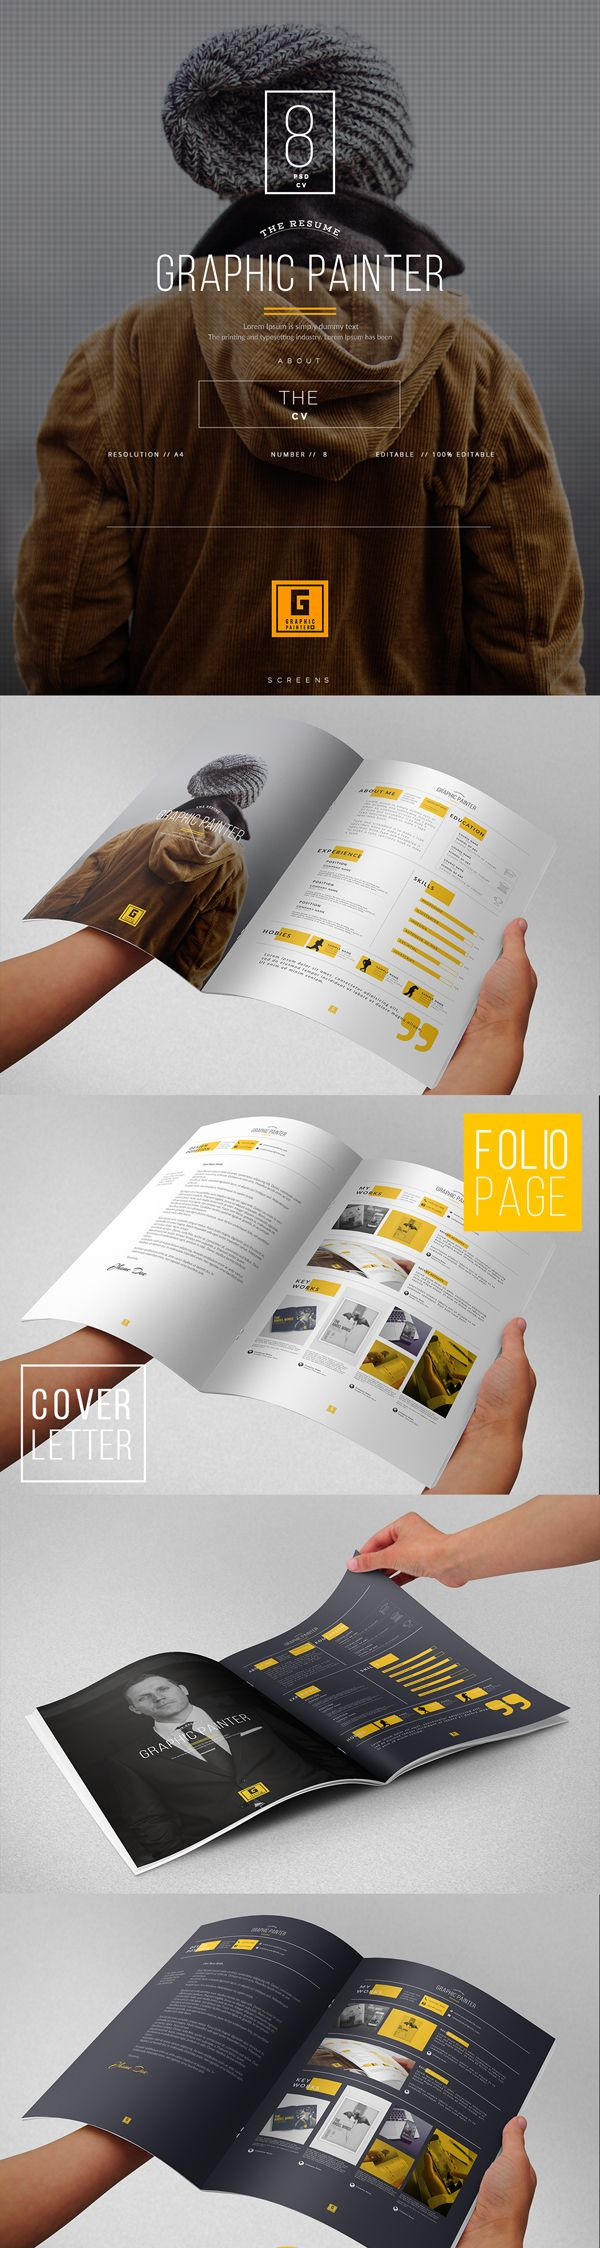 Free PSD Files - 27 Photoshop Psds for Designers | Freebies | Graphic Design Junction